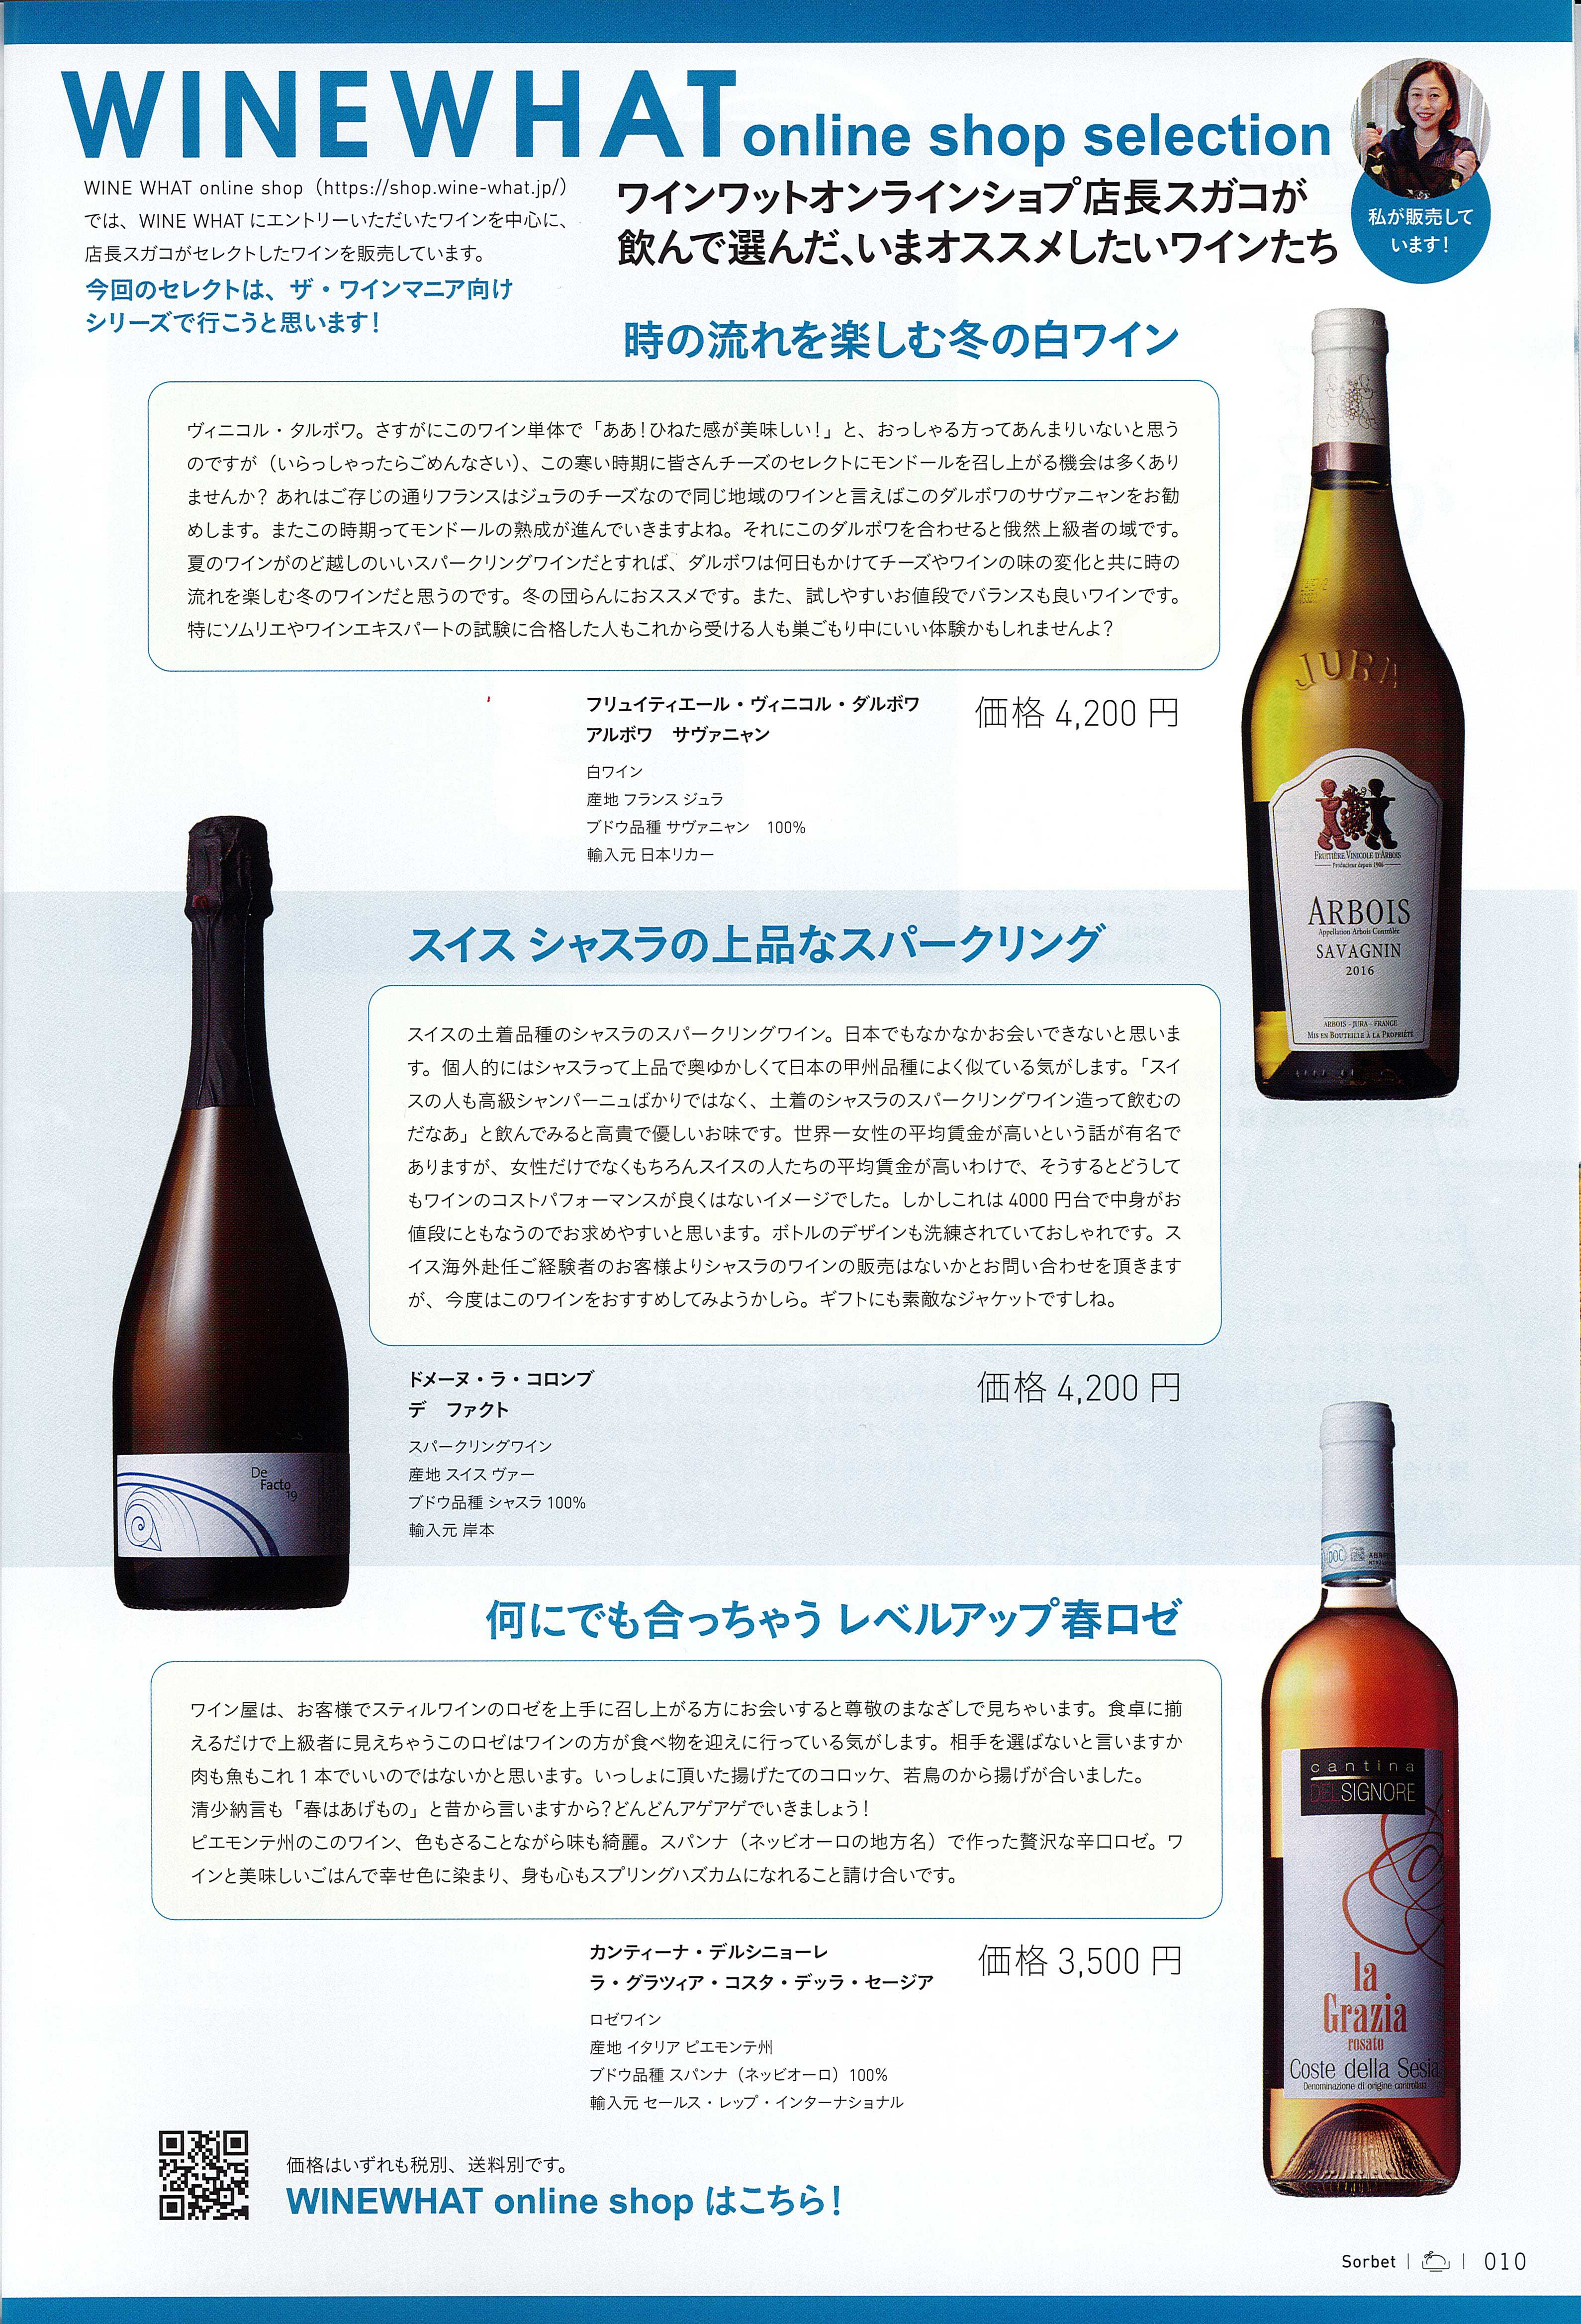 雑誌「WINE WHAT」(2021 March No.38)【WINE WHAT online shop selection】